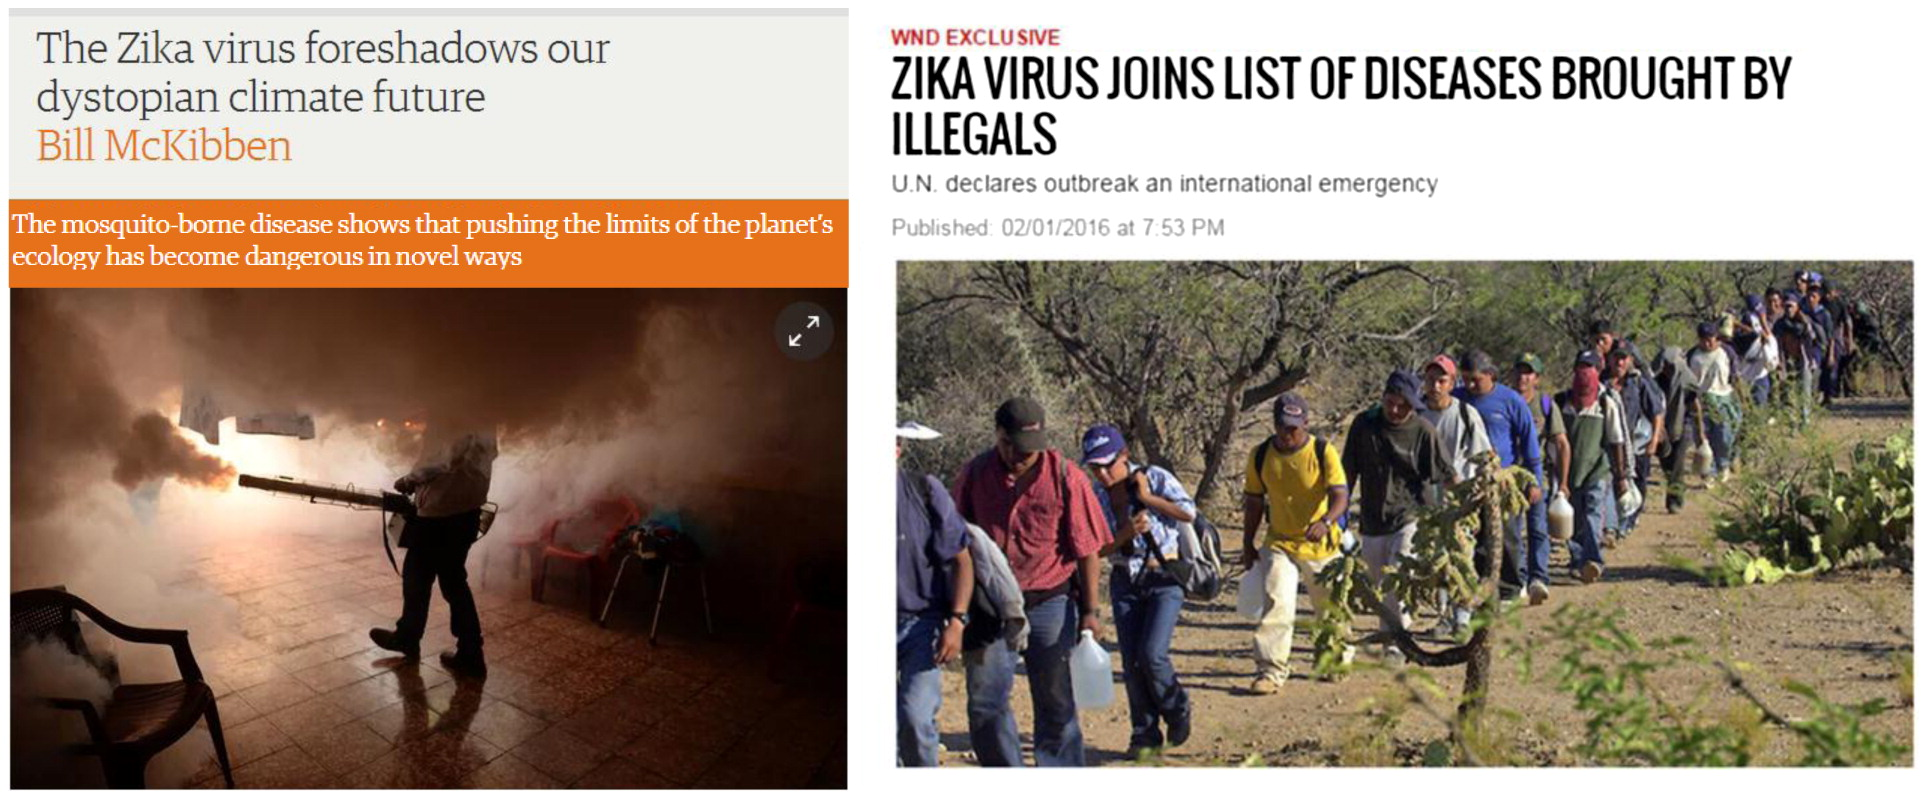 Headlines showing culturally antagonistic memes on the Zika virus. (Figure 3)